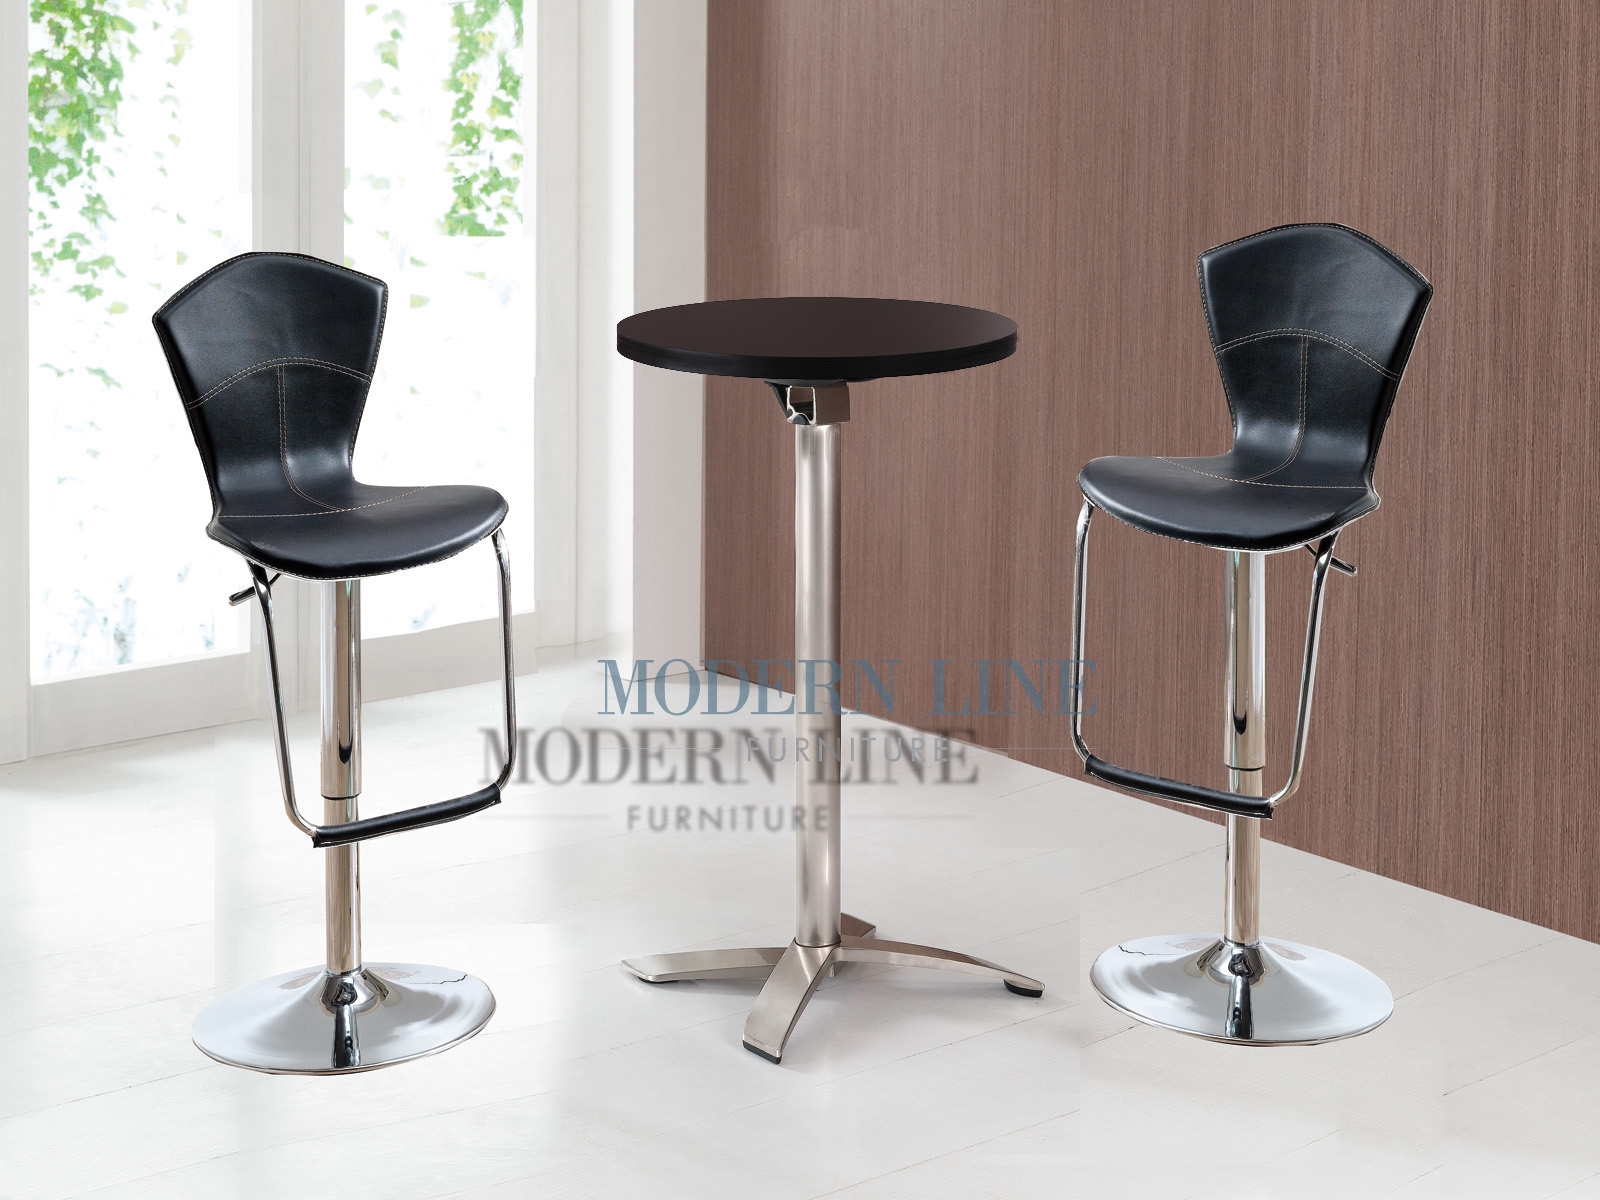 Modern Line Furniture - Commercial Furniture - Custom Made Furniture | Modern Foldable Scratch Resistant Wood Top Bar Table with Set of Two Black Bar Stools & Modern Line Furniture - Commercial Furniture - Custom Made ... islam-shia.org